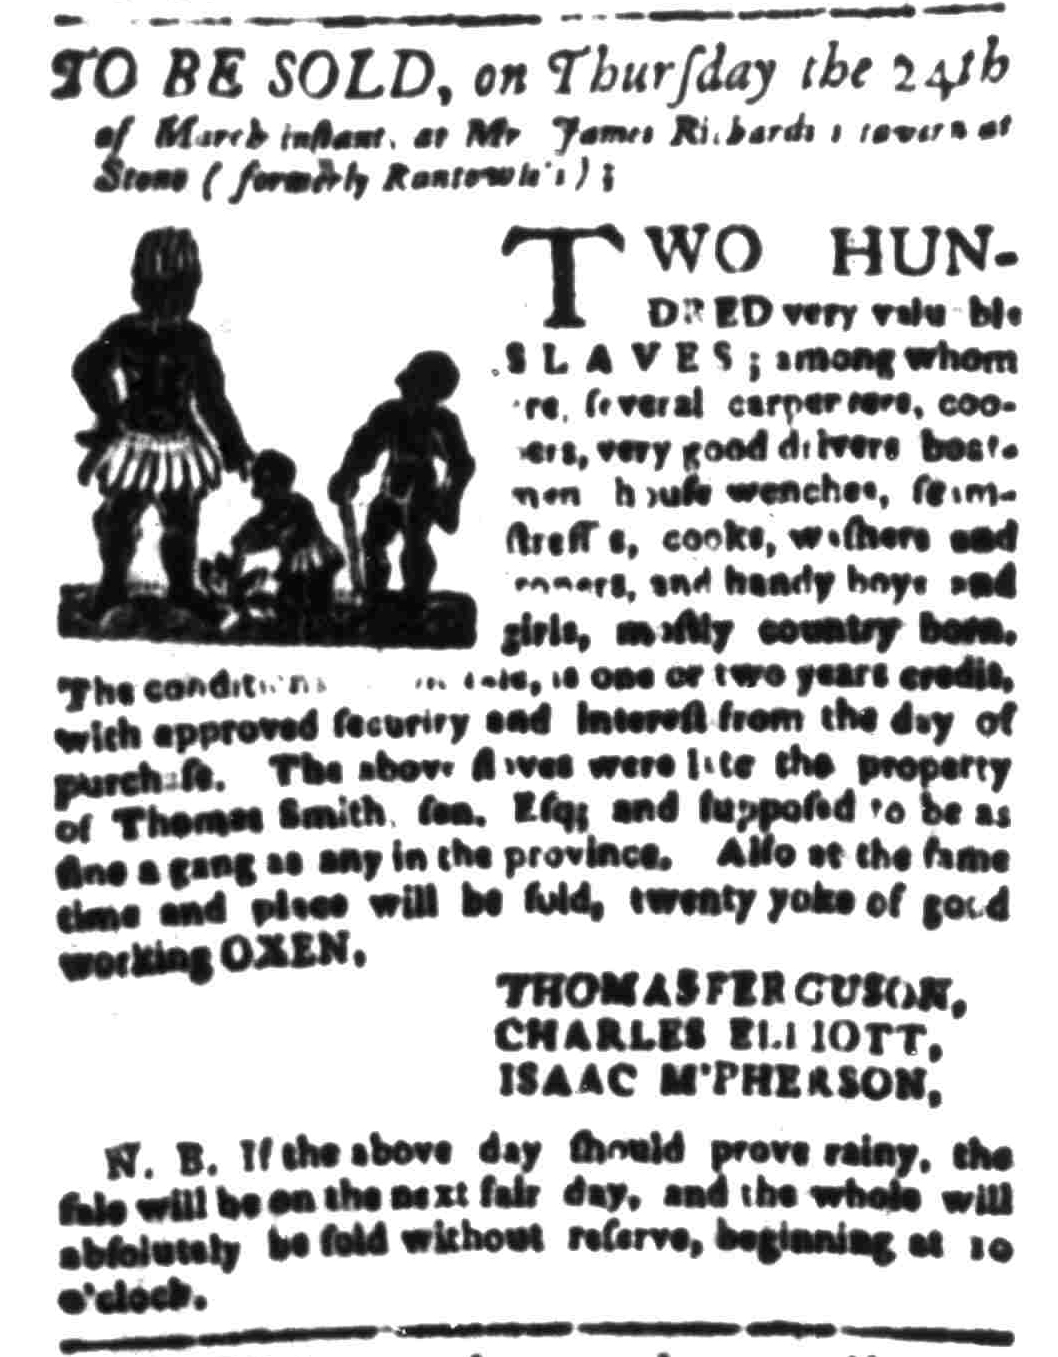 Mar 21 - South Carolina Gazette Slavery 4